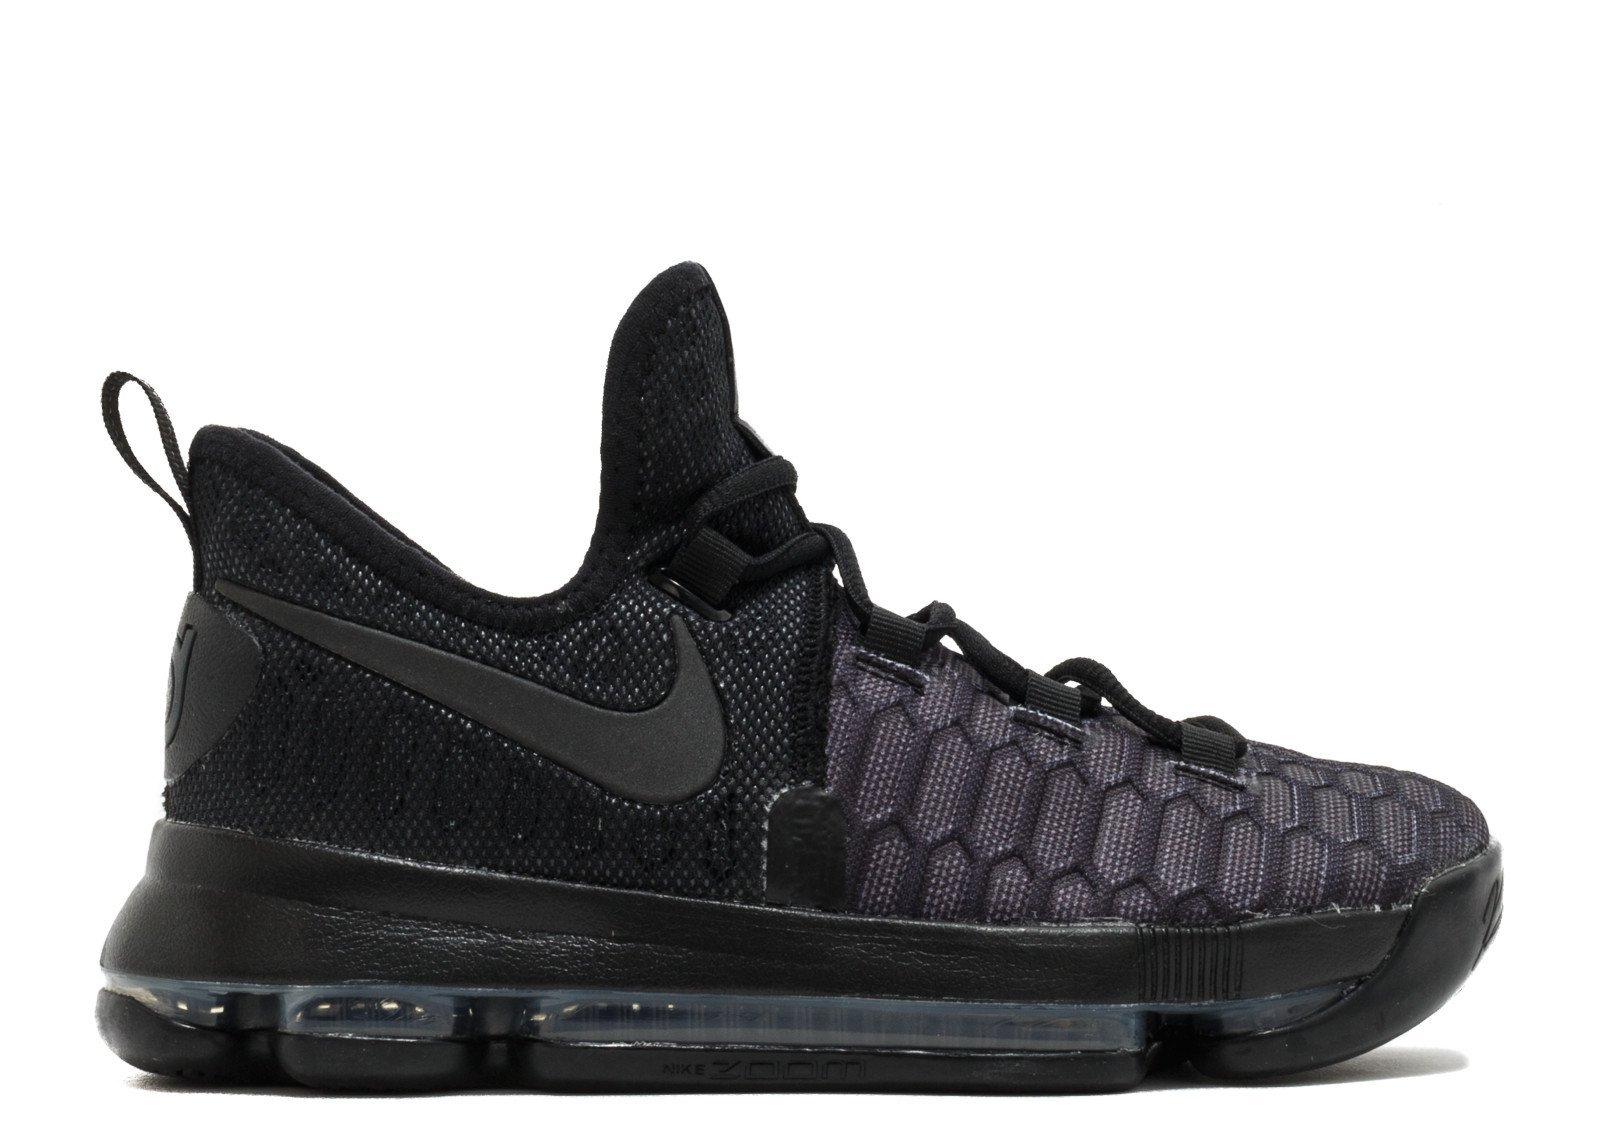 NIKE Kid's KD9 (GS) Basketball Shoe (Black/Black-Anthracite, 6.5Y) by NIKE